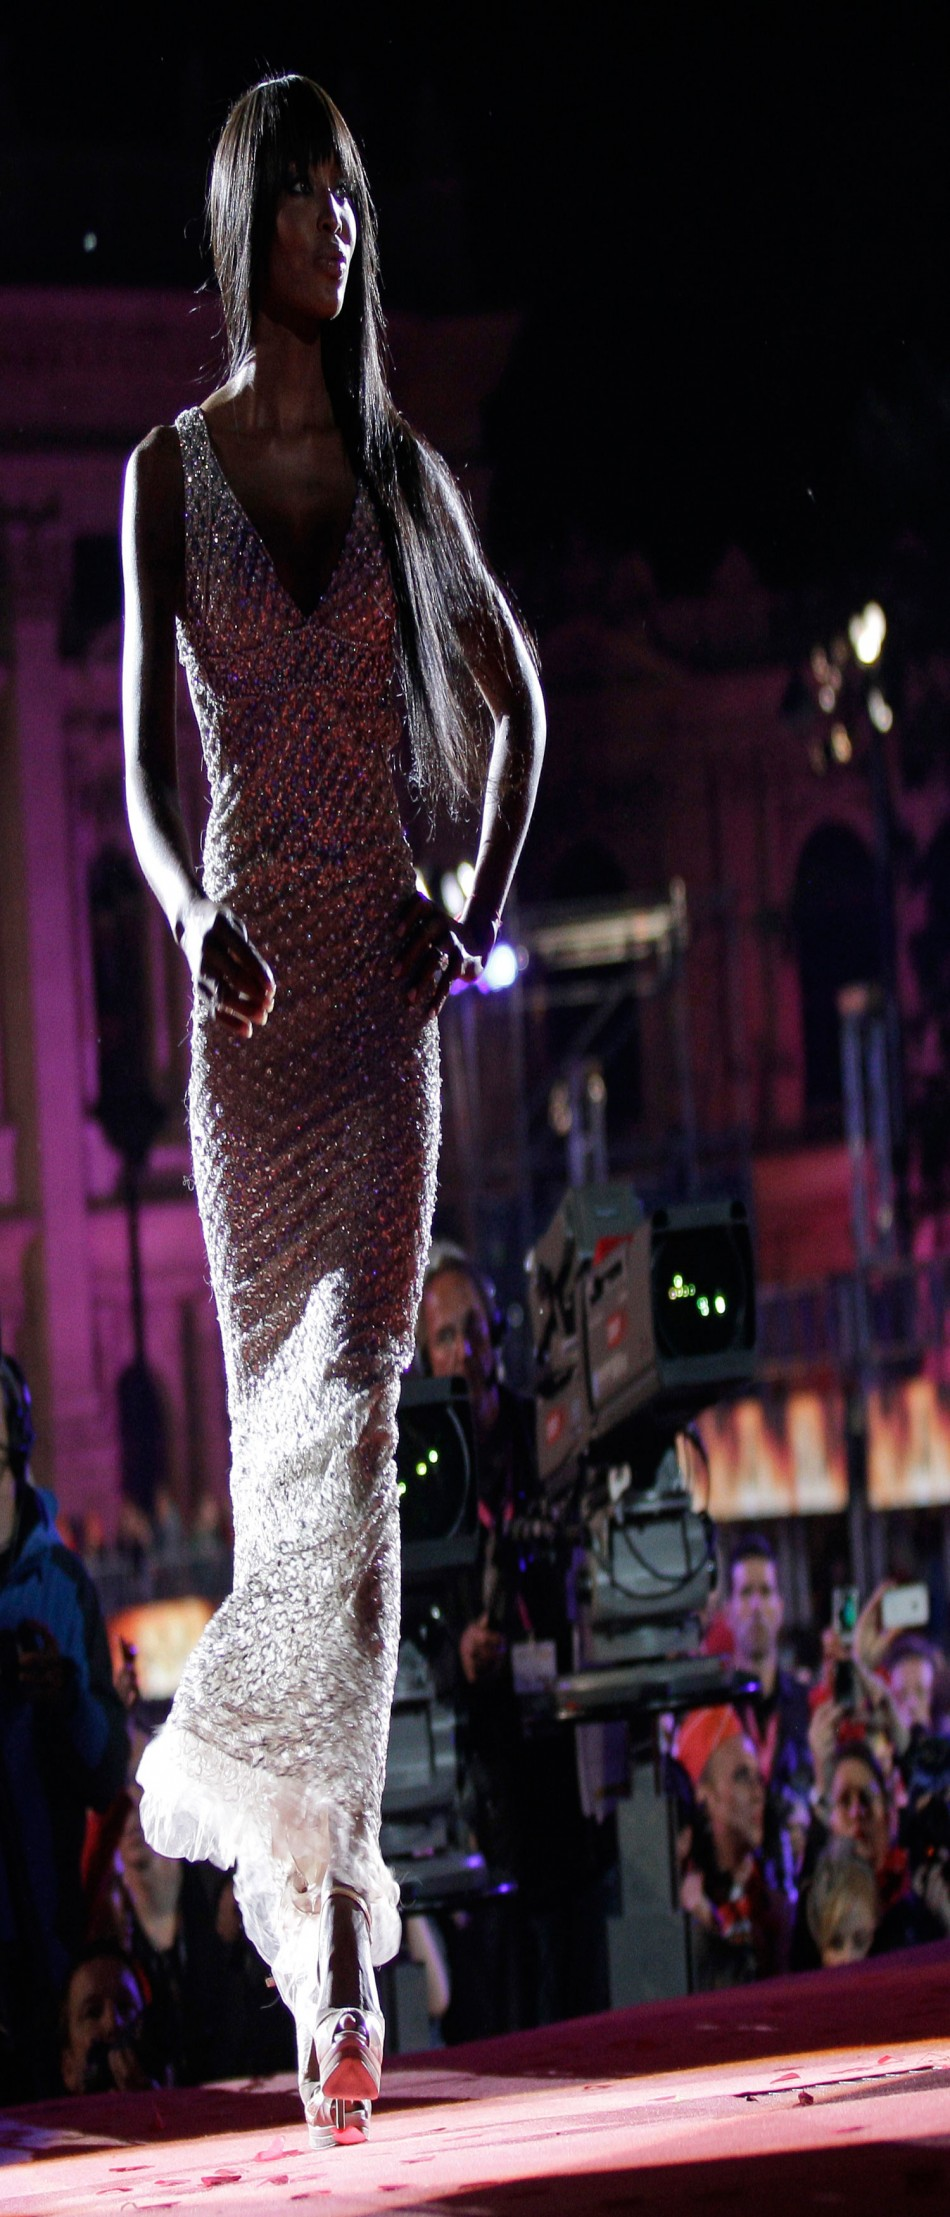 20th Vienna Life Ball Celebrities, Models and Participants